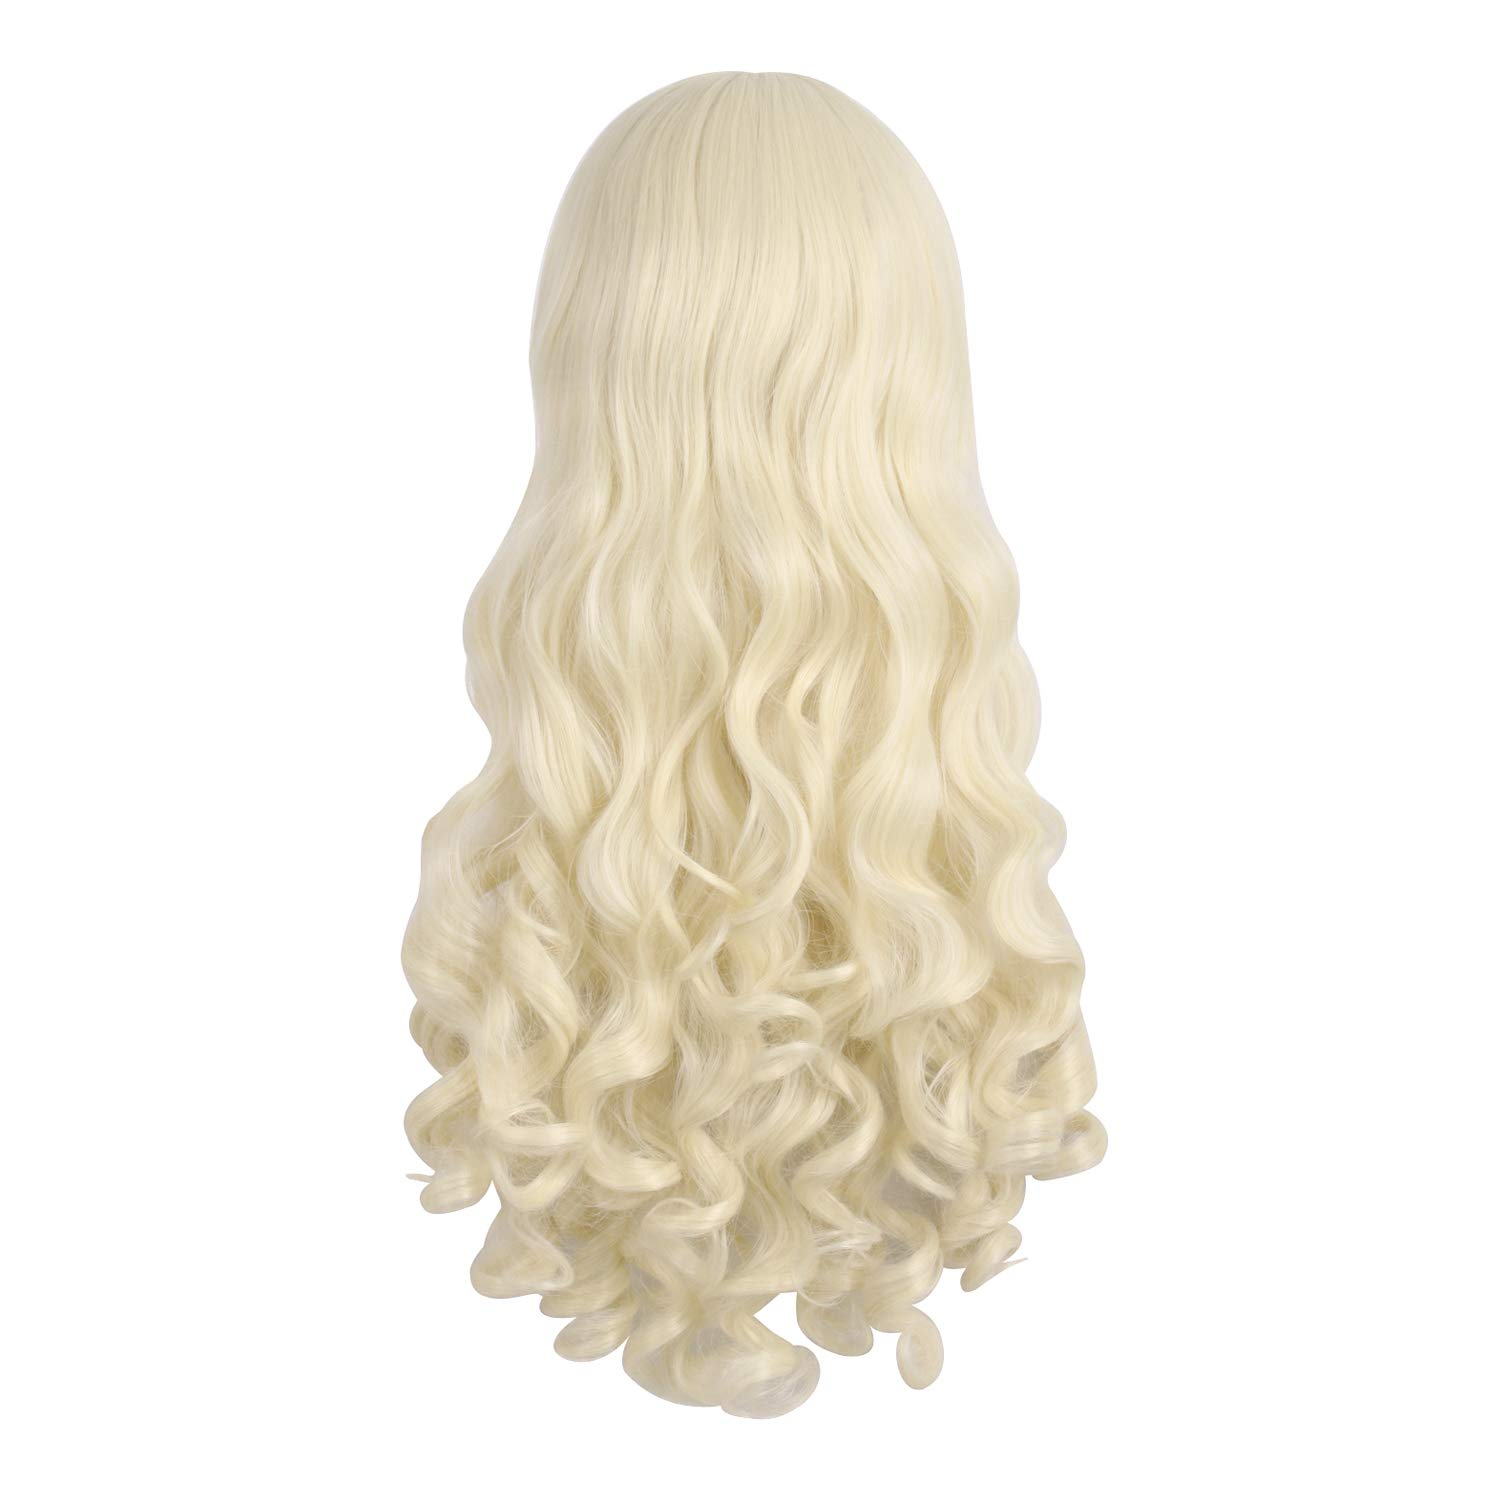 MapofBeauty 28//70cm Lolita Long Curly Clip On Ponytails Cosplay Wig Brown